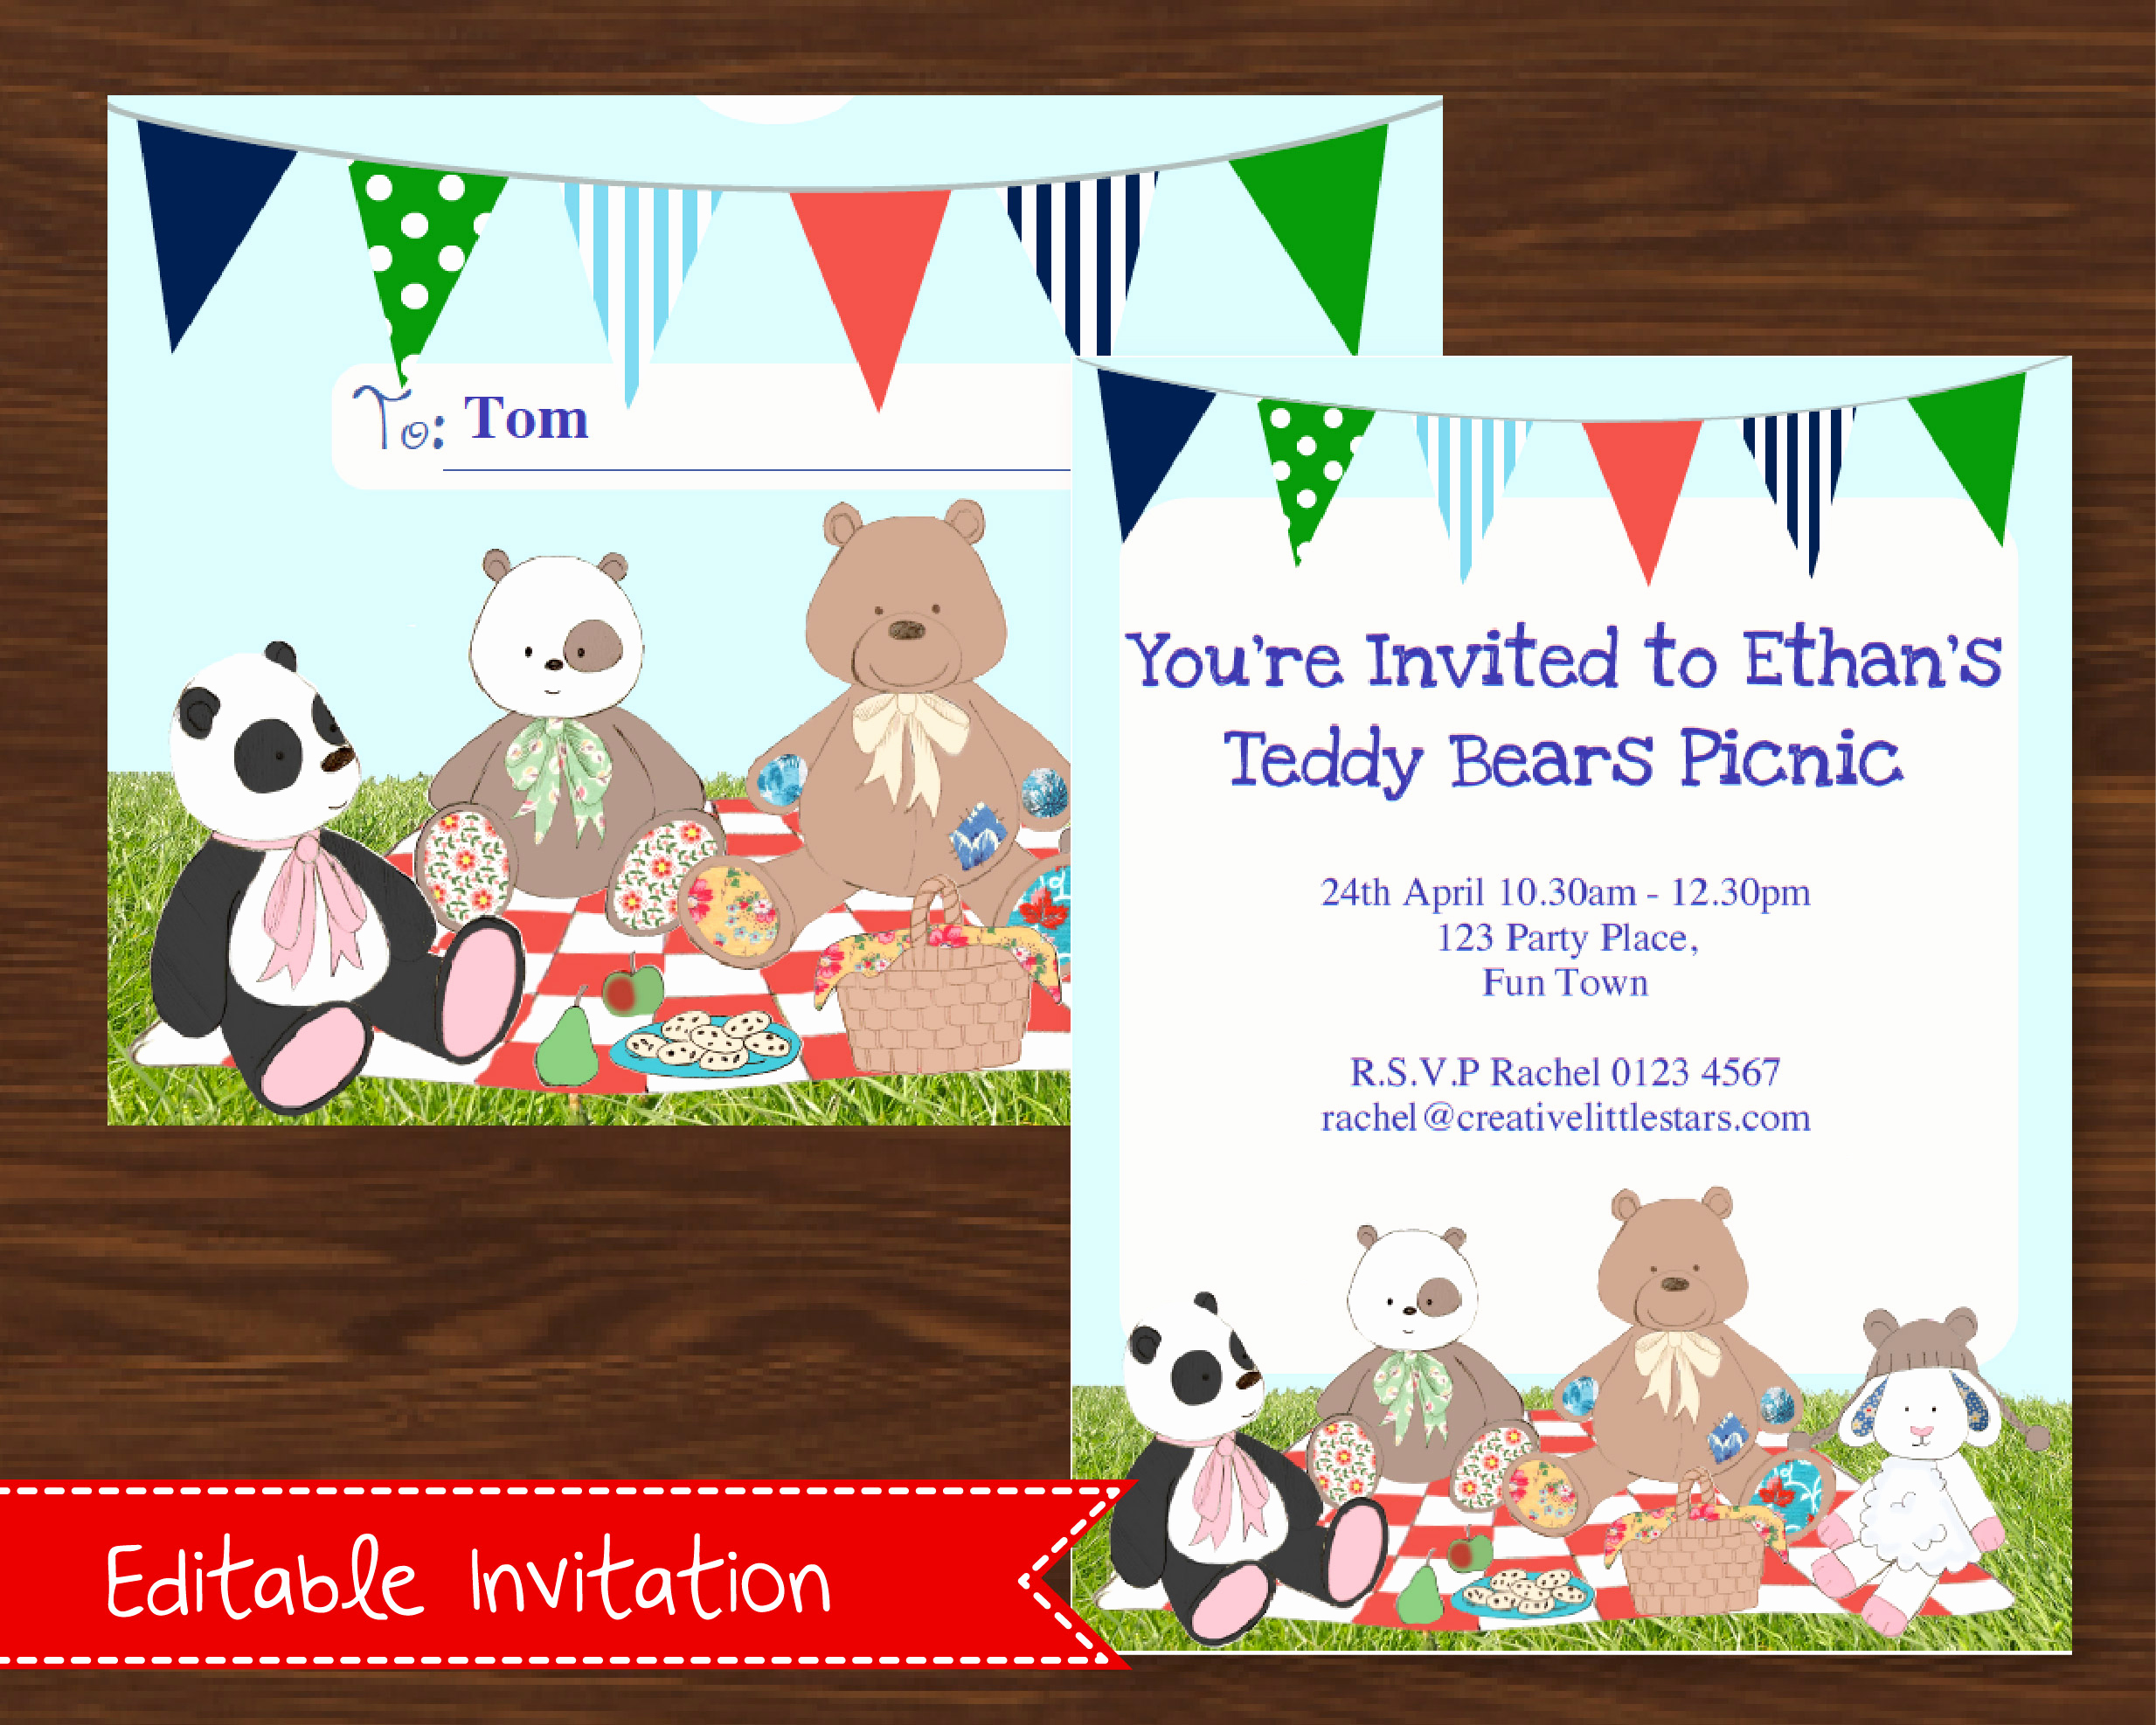 Teddy Bears Picnic Invitation Unique Printable Teddy Bears Picnic Invitation Blue Creative